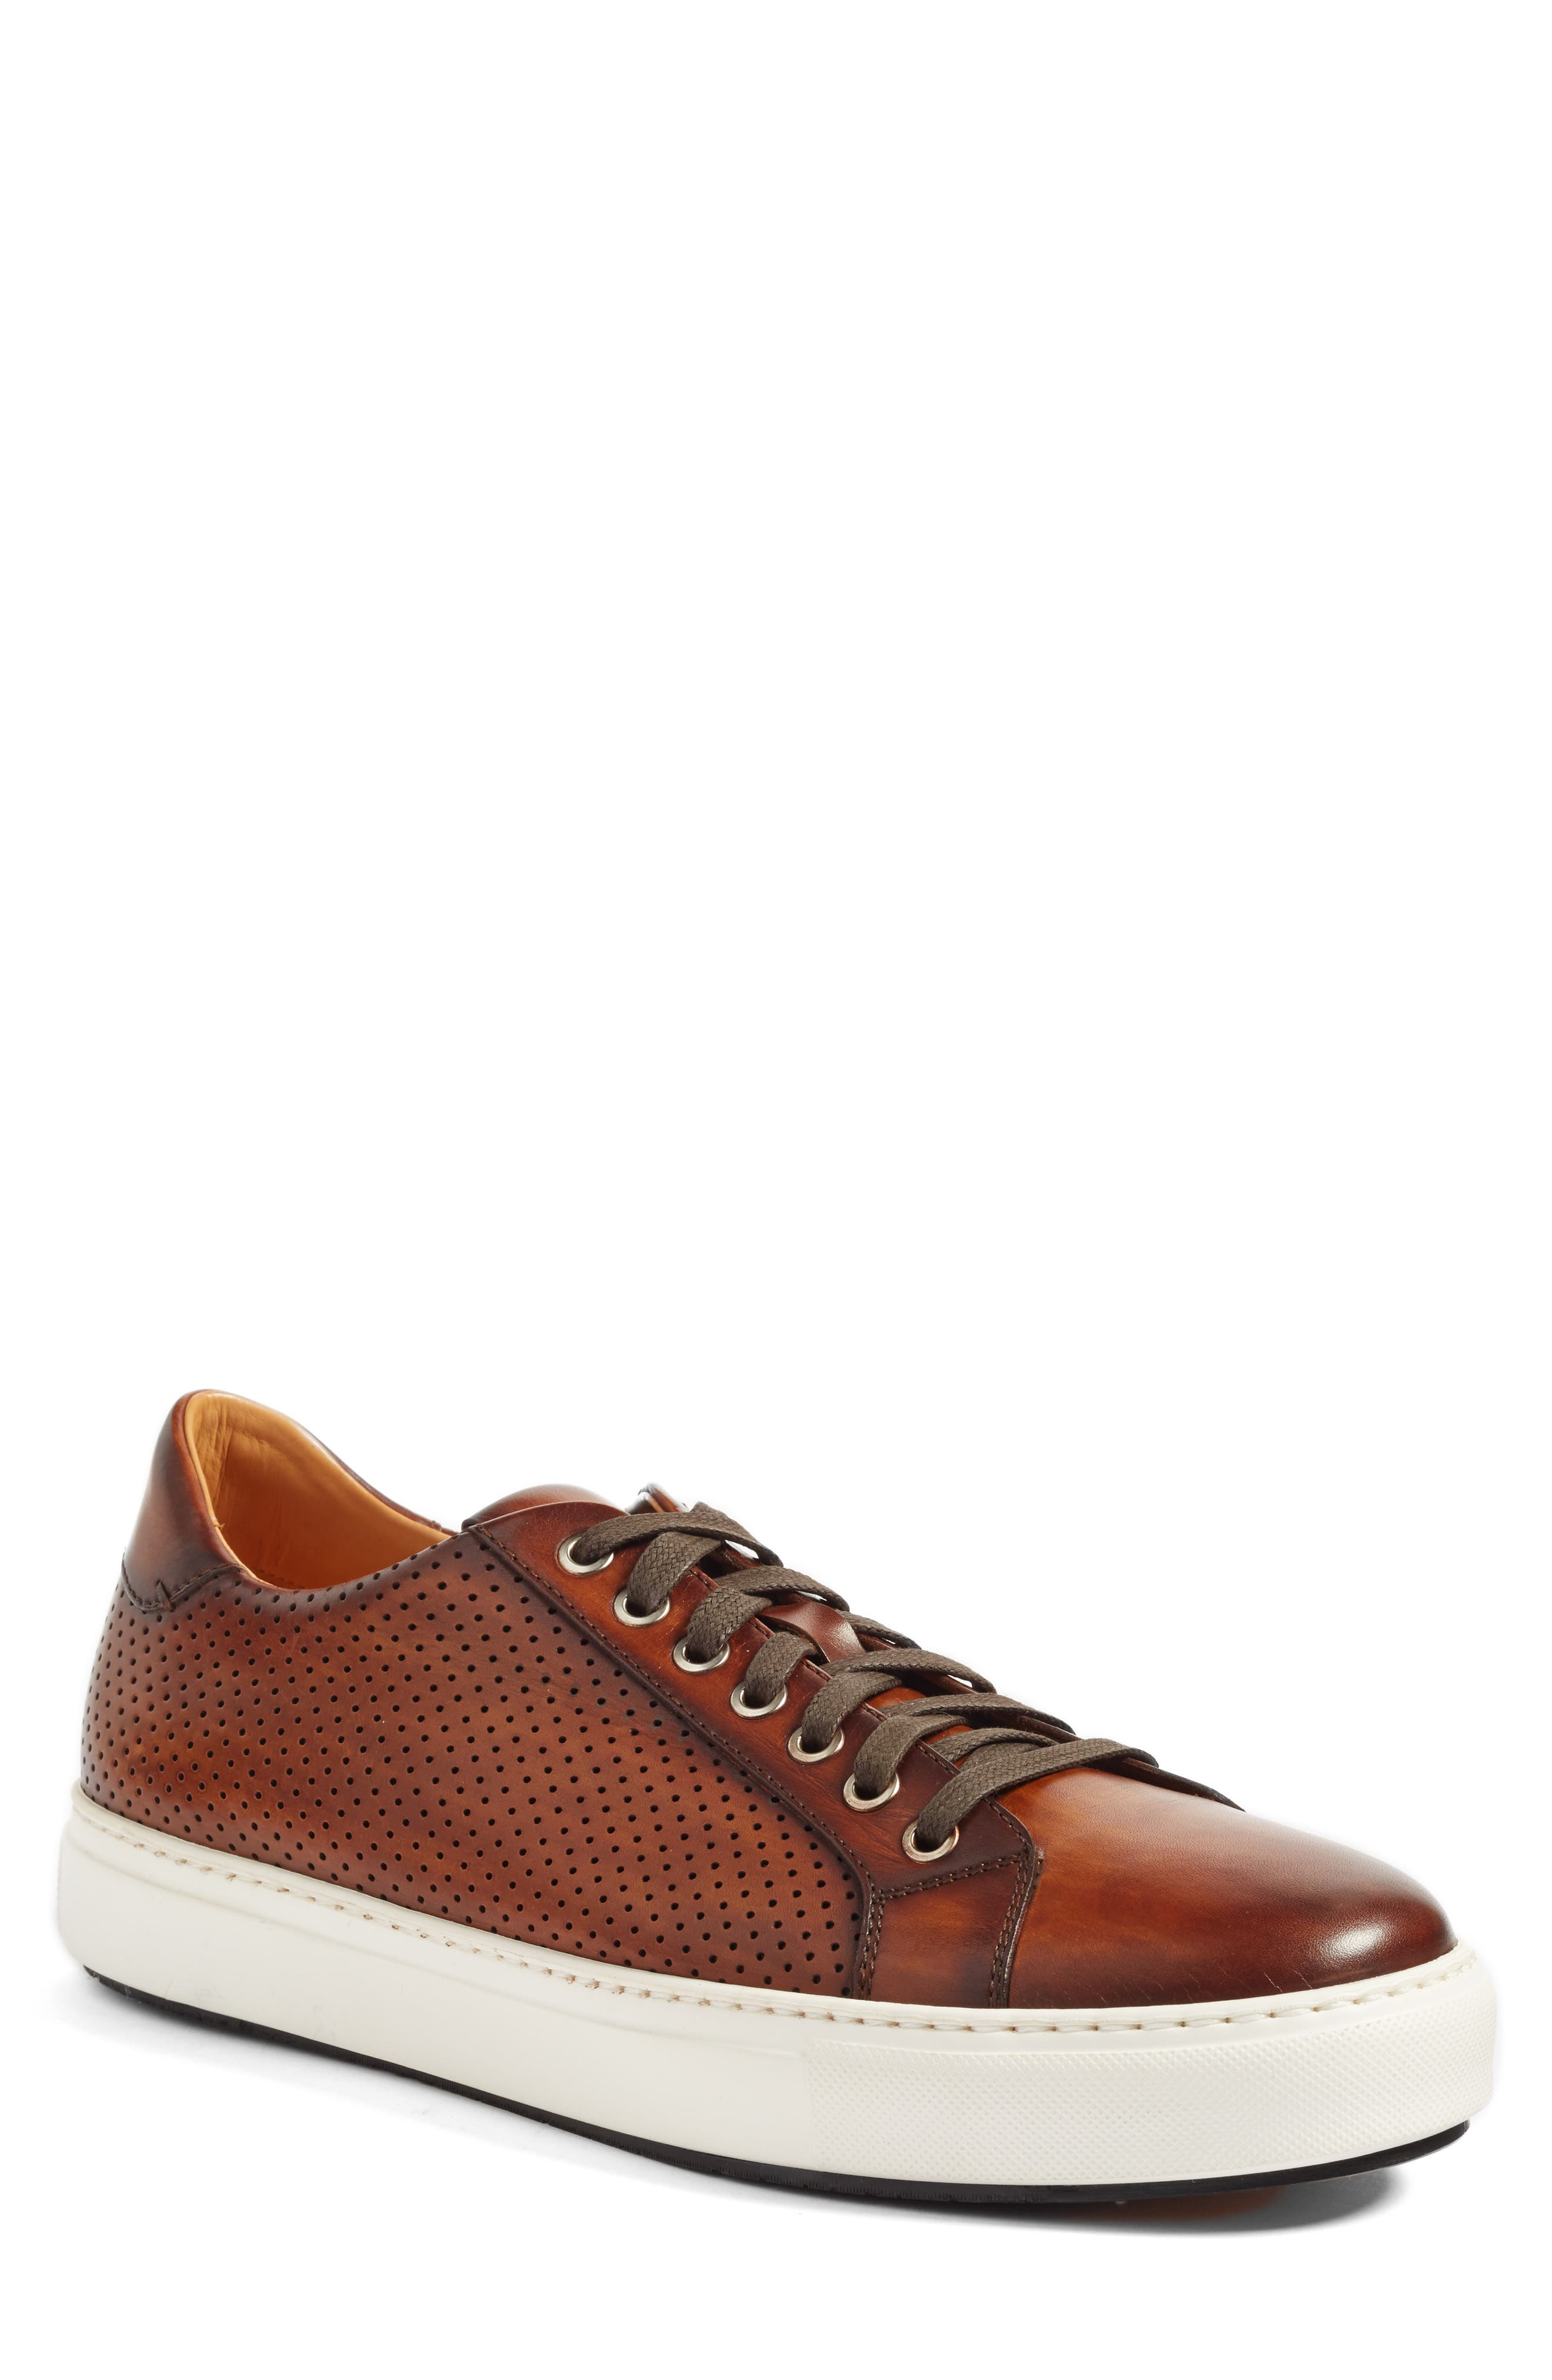 Main Image - Magnanni 'Blanco' Sneaker (Men)